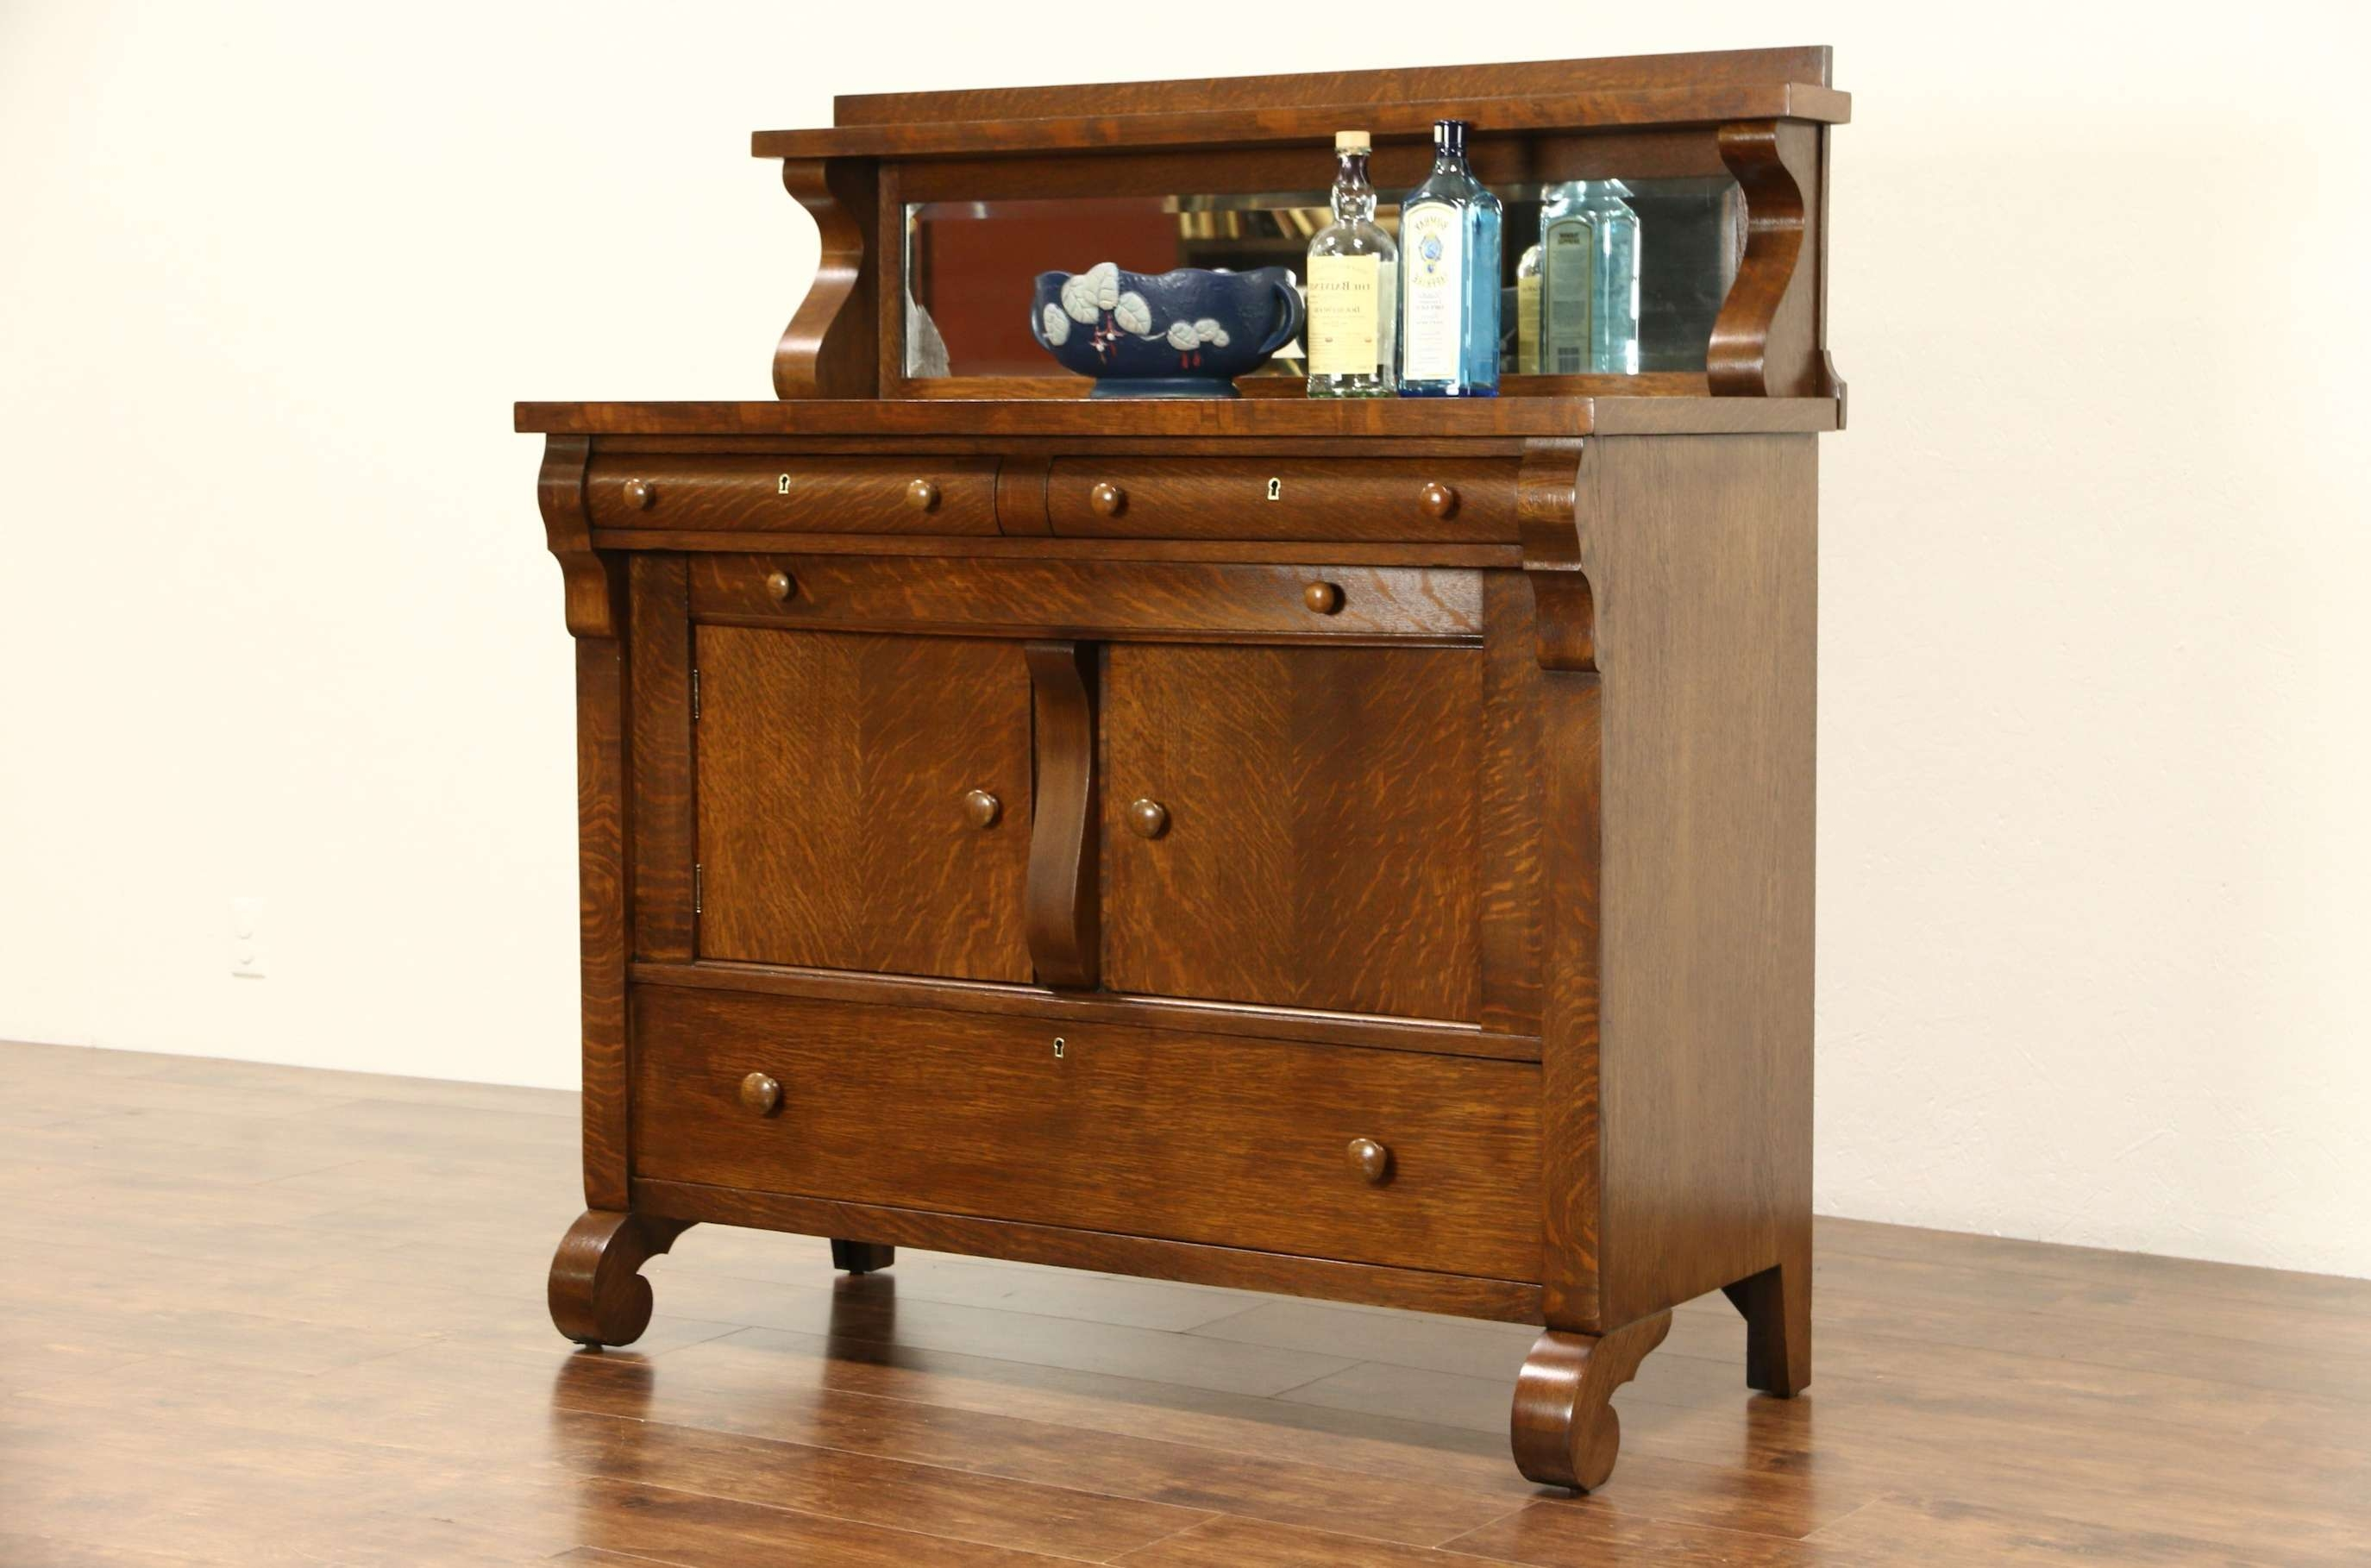 Sold – Oak 1900 Antique Empire Sideboard Or Buffet, Beveled Mirror Inside Antique Sideboards With Mirror (View 19 of 20)